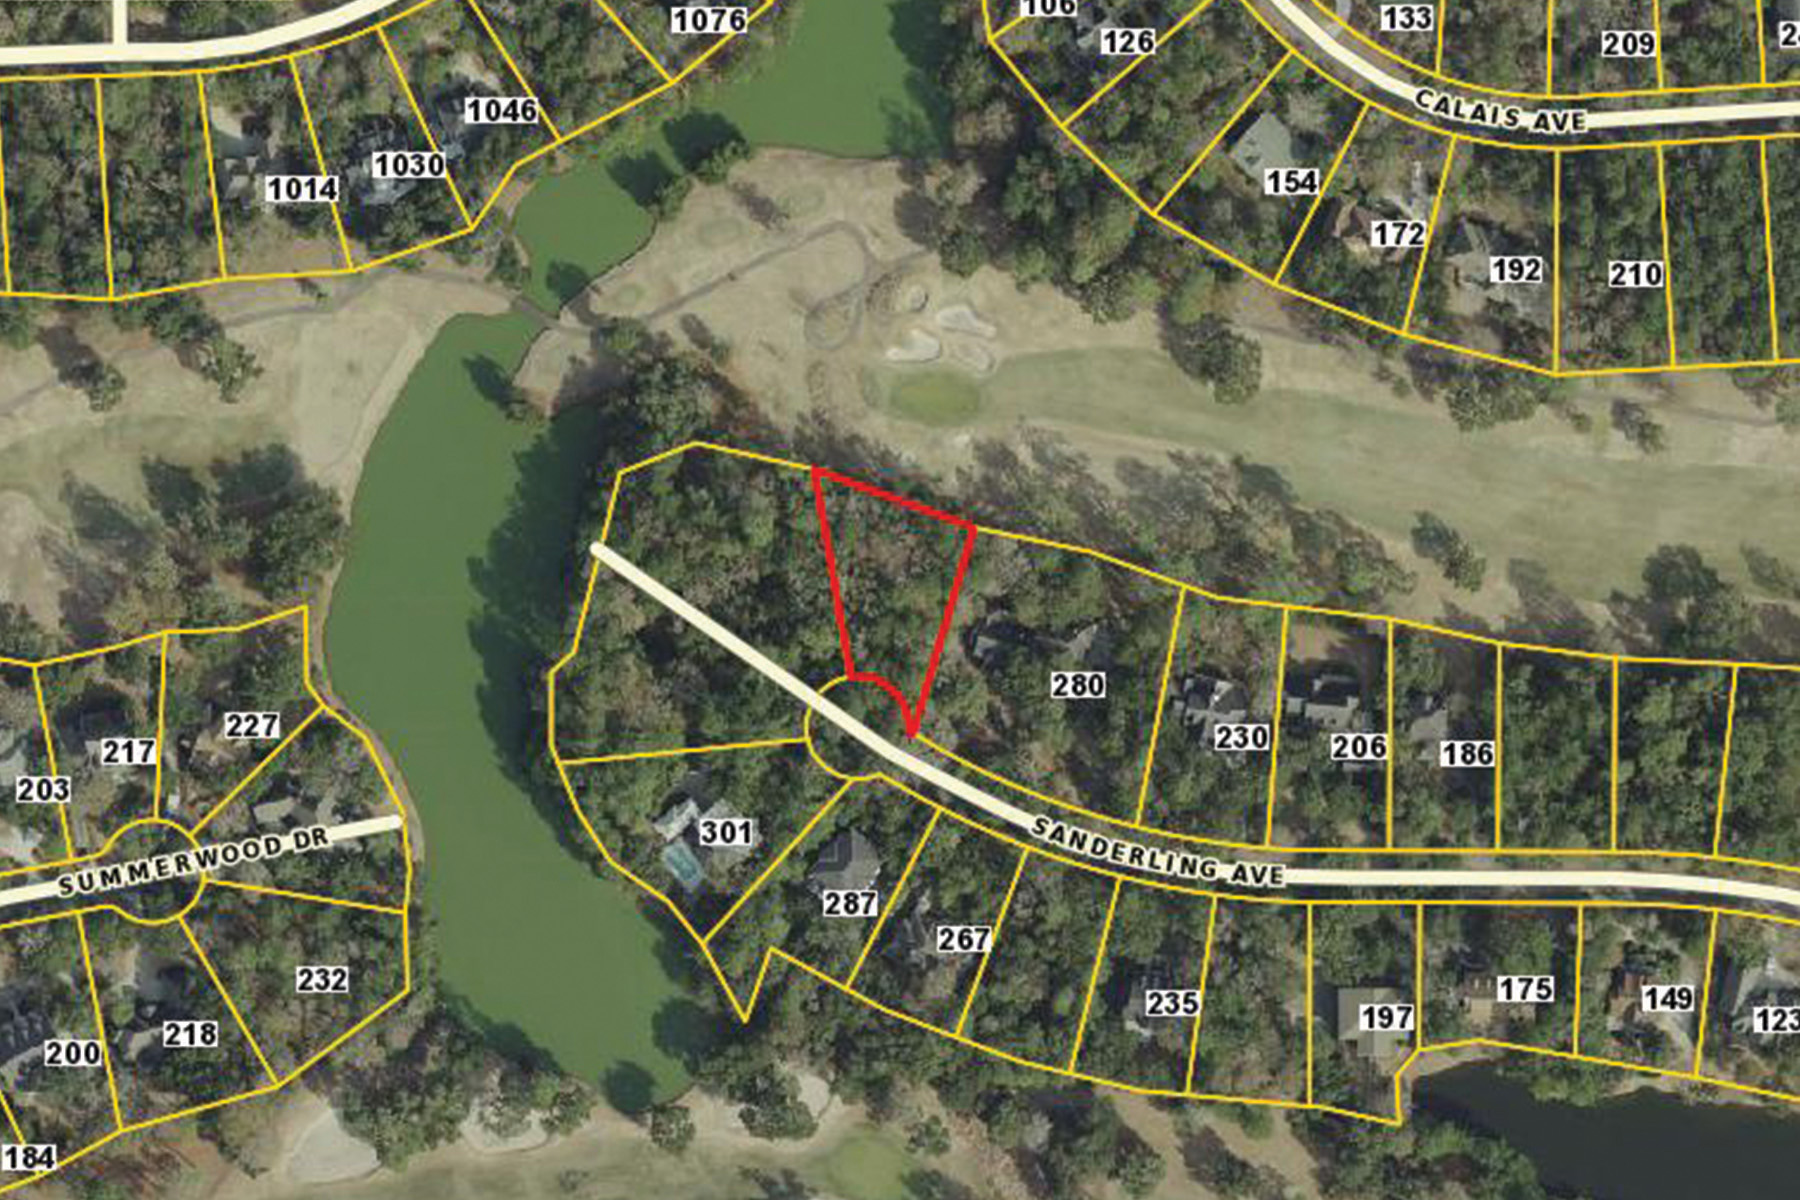 Land for Sale at Lot 167 Sanderling Ave., Georgetown, SC 29440 Lot 167 Sanderling Ave. Georgetown, South Carolina 29440 United States